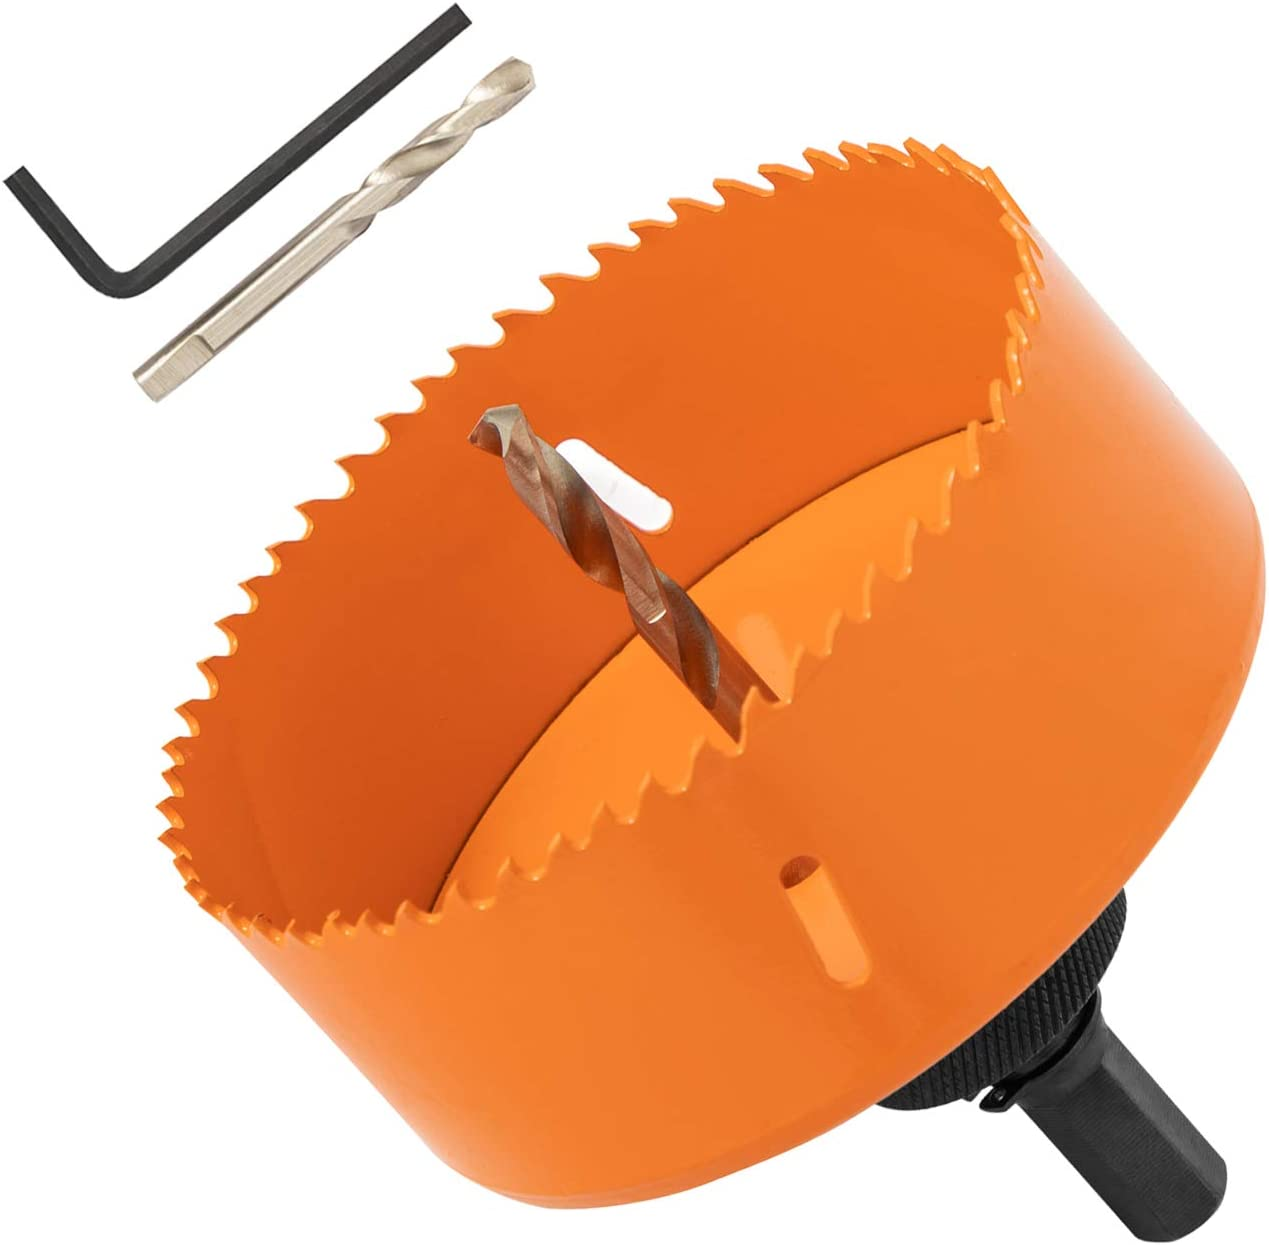 SUNGATOR 4-Inch Bi-Metal 100% quality 35% OFF warranty Hole Saw Kit Spare Arbor Pilot and with